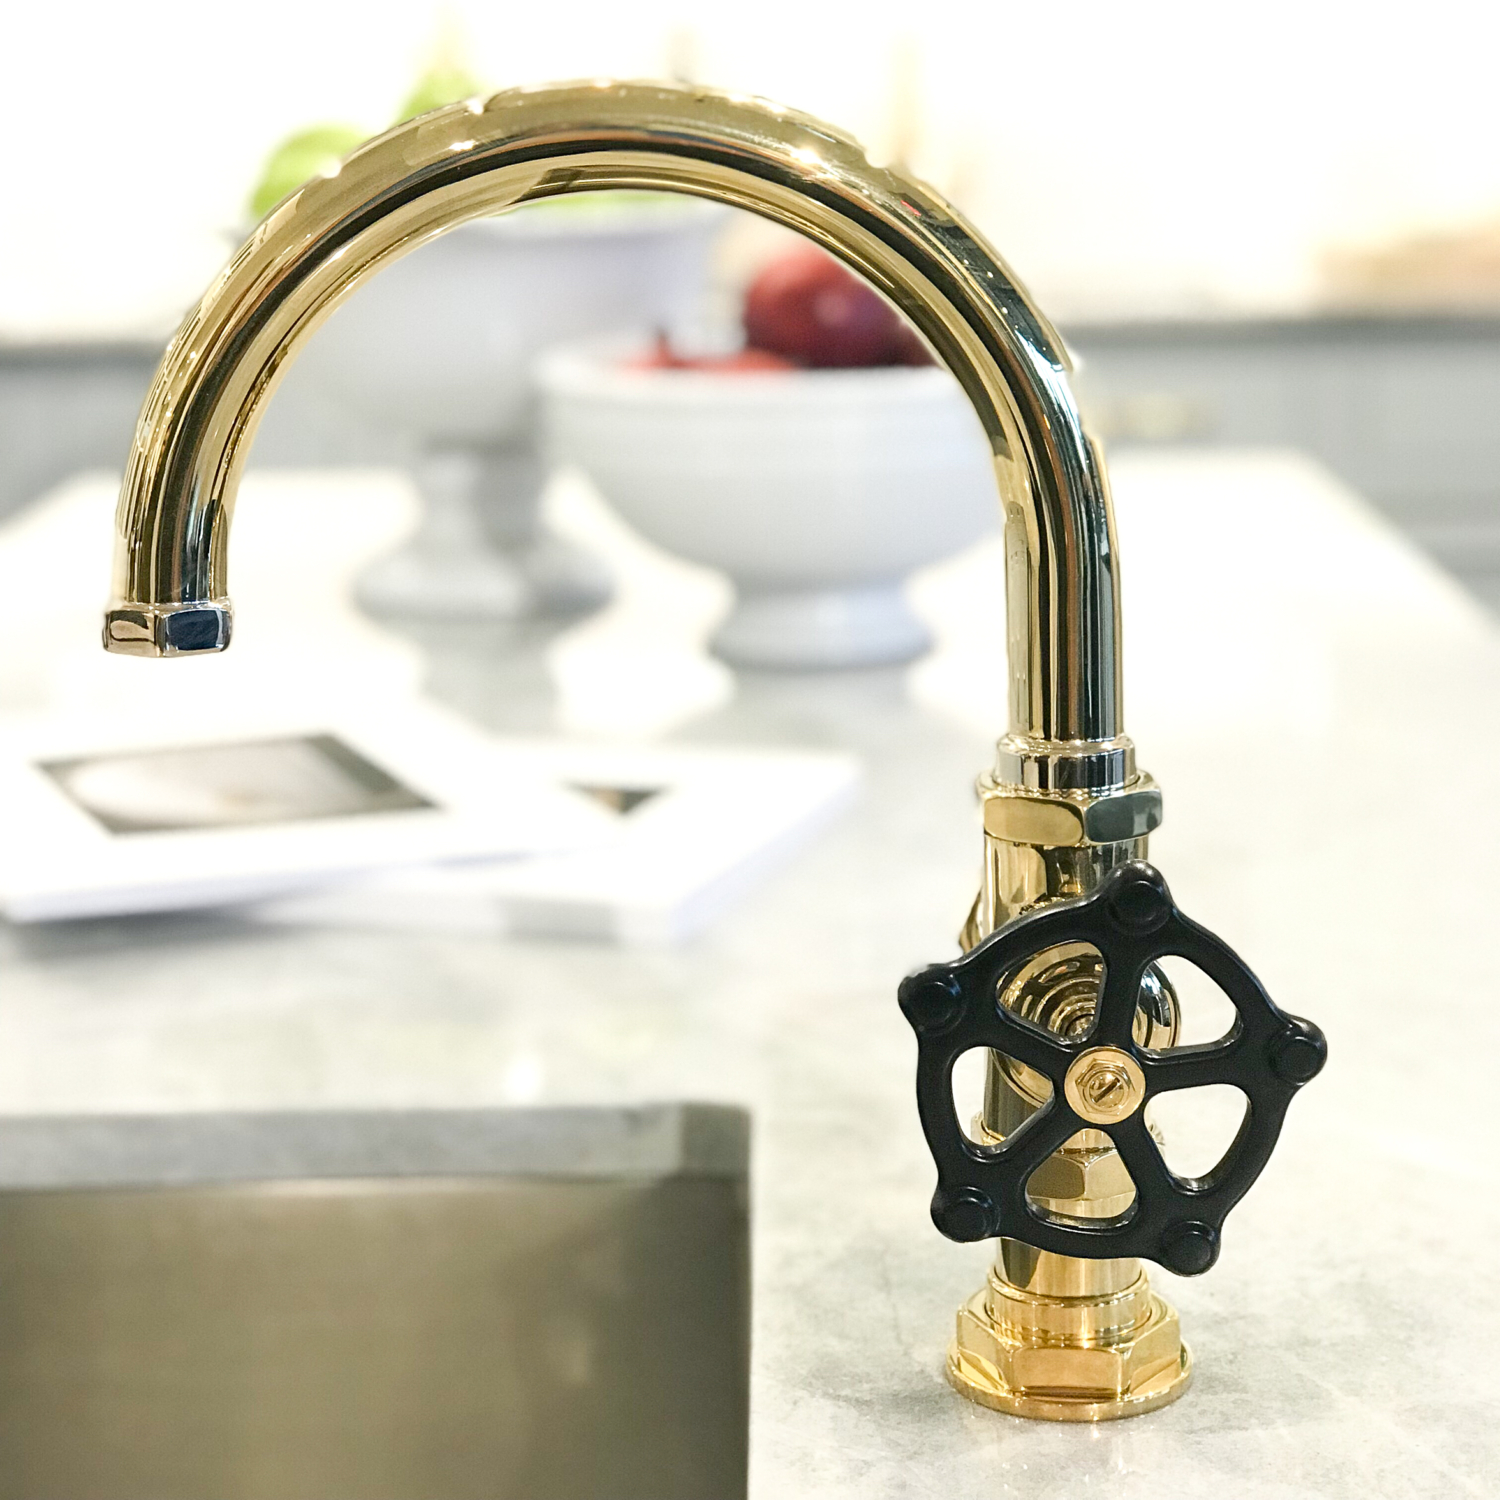 Polished brass faucet - A recap of the 2017 Boston Design Market - an annual event hosted by the Boston Design Center centering around what is new and exciting in interior design.